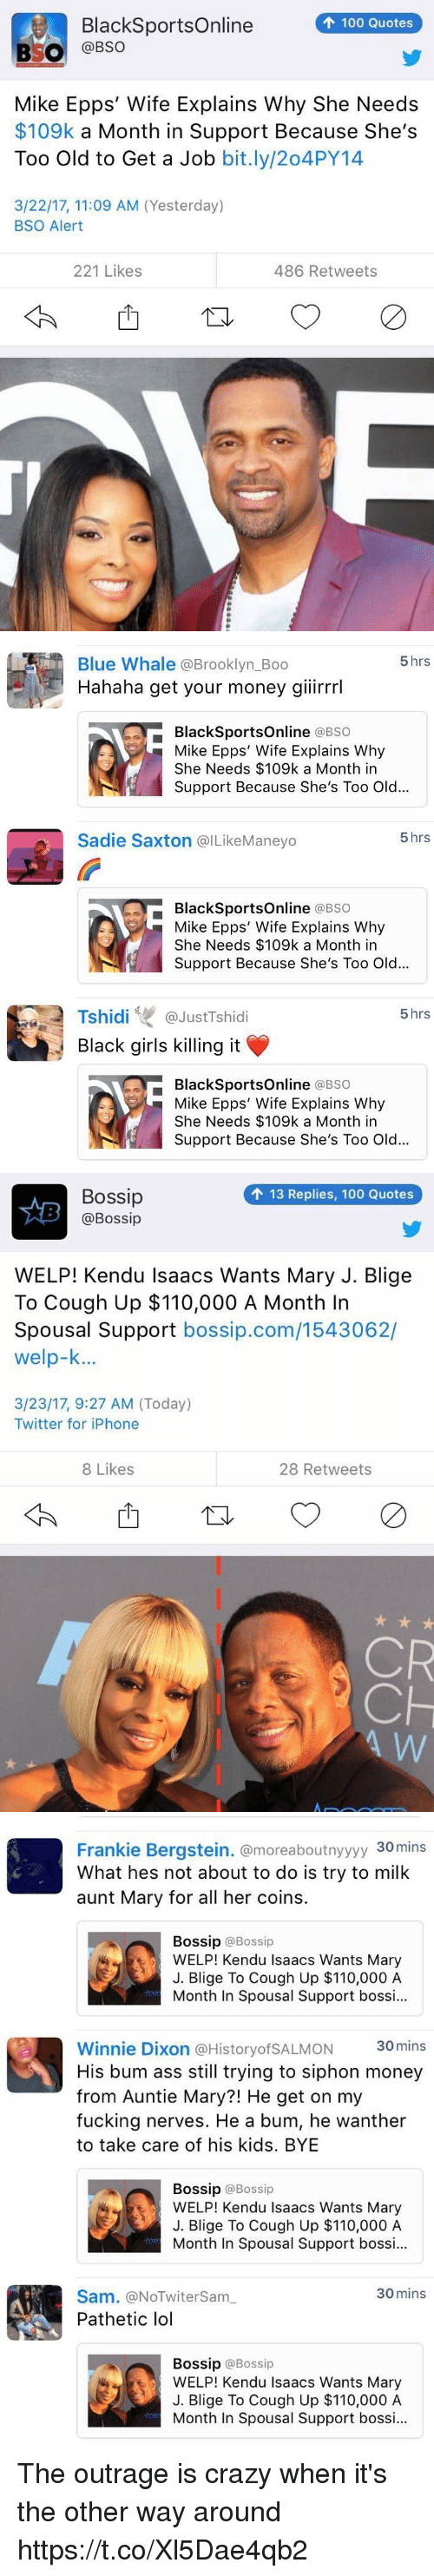 mary j: 100 Quotes  BlackSportsOnline  BSO  @BSO  Mike Epps' Wife Explains Why She Needs  $109k a Month in Support Because She's  Too Old to Get a Job  bit.ly/204PY14  3/22/17, 11:09 AM (Yesterday)  BSO Alert  221 Likes  486 Retweets   5 hrs  Blue Whale Brooklyn Boo  Hahaha get your money giiirrrl  BlackSportsOnline  (a BSO  Mike Epps' Wife Explains Why  She Needs $109k a Month in  Support Because She's Too Old...  5 hrs  Sadie Saxton @ILikeManeyo  BlackSportsOnline  (a BSO  Mike Epps' Wife Explains Why  She Needs $109k a Month in  Support Because She's Too Old...  Tshidi  GJustTshidi  5 hrs  Black girls killing it  BlackSportsOnline  (a BSO  Mike Epps' Wife Explains Why  She Needs $109k a Month in  Support Because She's Too Old...   Bossip  13 Replies, 100 Quotes  @Bossip  WELP! Kendu Isaacs Wants Mary J. Blige  To Cough Up $110,000 A Month In  Spousal Support  bossip.com/1543062/  welp-k...  3/23/17, 9:27 AM (Today)  Twitter for iPhone  8 Likes  28 Retweets  CR   Frankie Bergstein. @moreaboutnyyyy 30mins  What hes not about to do is try to milk  aunt Mary for all her coins.  Bossip  @Bossip  WELP! Kendu Isaacs Wants Mary  J. Blige To Cough Up $110,000 A  Month In Spousal Support bossi...  Winnie Dixon a HistoryofSALMON 30mins  His bum ass still trying to siphon money  from Auntie Mary?! He get on my  fucking nerves. He a bum, he wanther  to take care of his kids. BYE  Bossip  @Bossip  WELP! Kendu Isaacs Wants Mary  J. Blige To cough up $110,000 A  Month In Spousal Support bossi...  30 mins  Sam. (aNOTwitersam  Pathetic lol  Bossip @Bossip  WELP! Kendu Isaacs Wants Mary  J. Blige To Cough Up $110,000 A  Month In Spousal Support bossi... The outrage is crazy when it's the other way around https://t.co/Xl5Dae4qb2